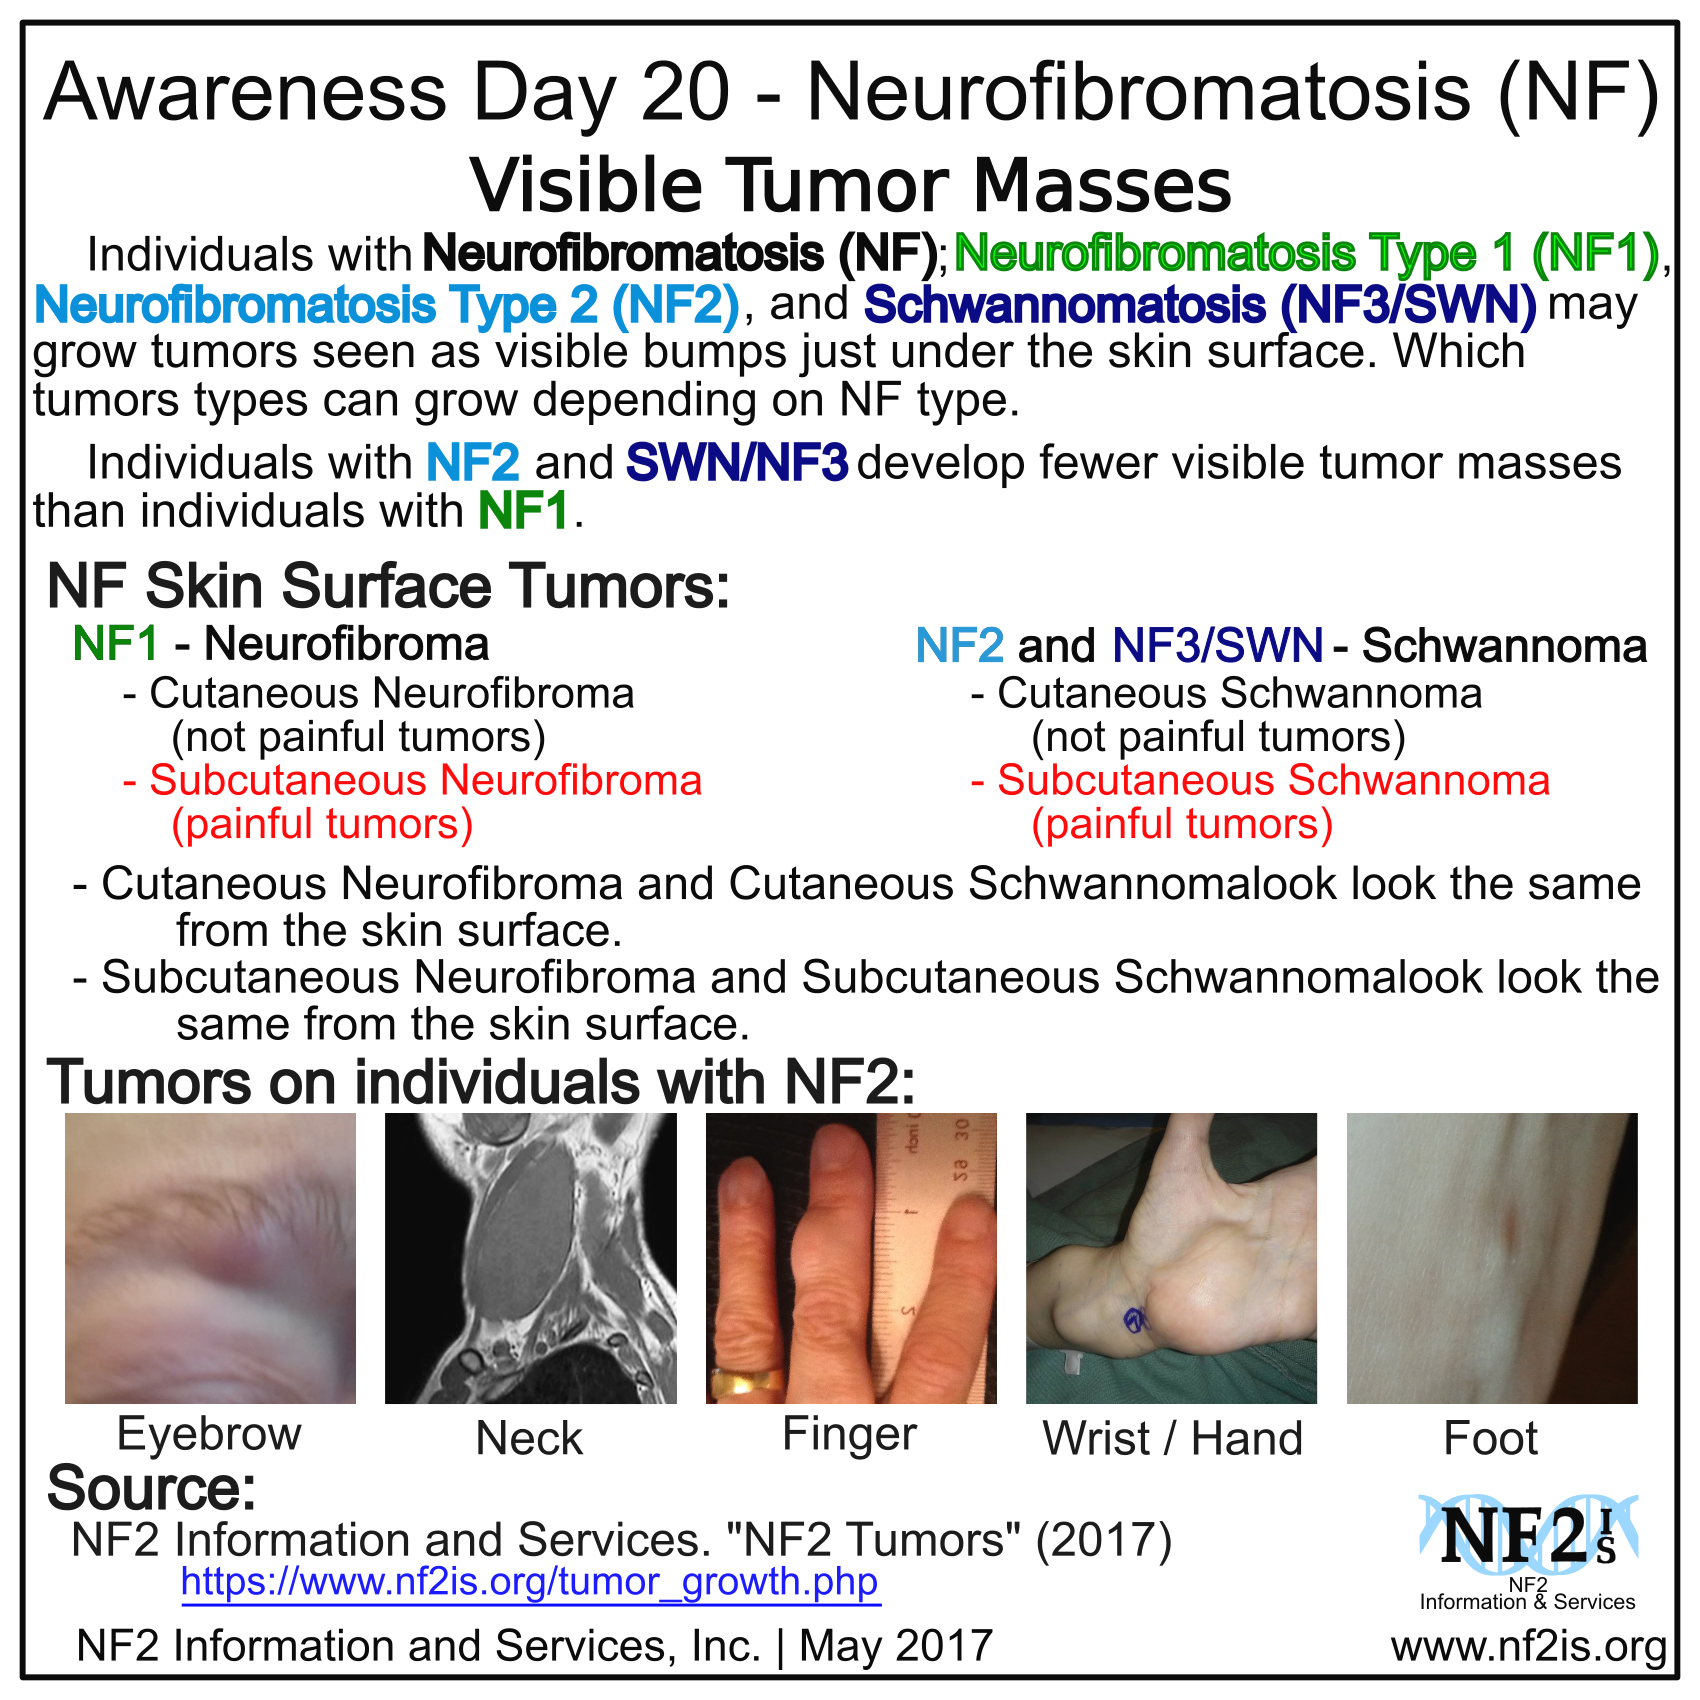 nf1, nf2, nf3, swn, skin surface, tumors, Subcutaneous, Neurofibroma, Schwannoma, Cutaneous